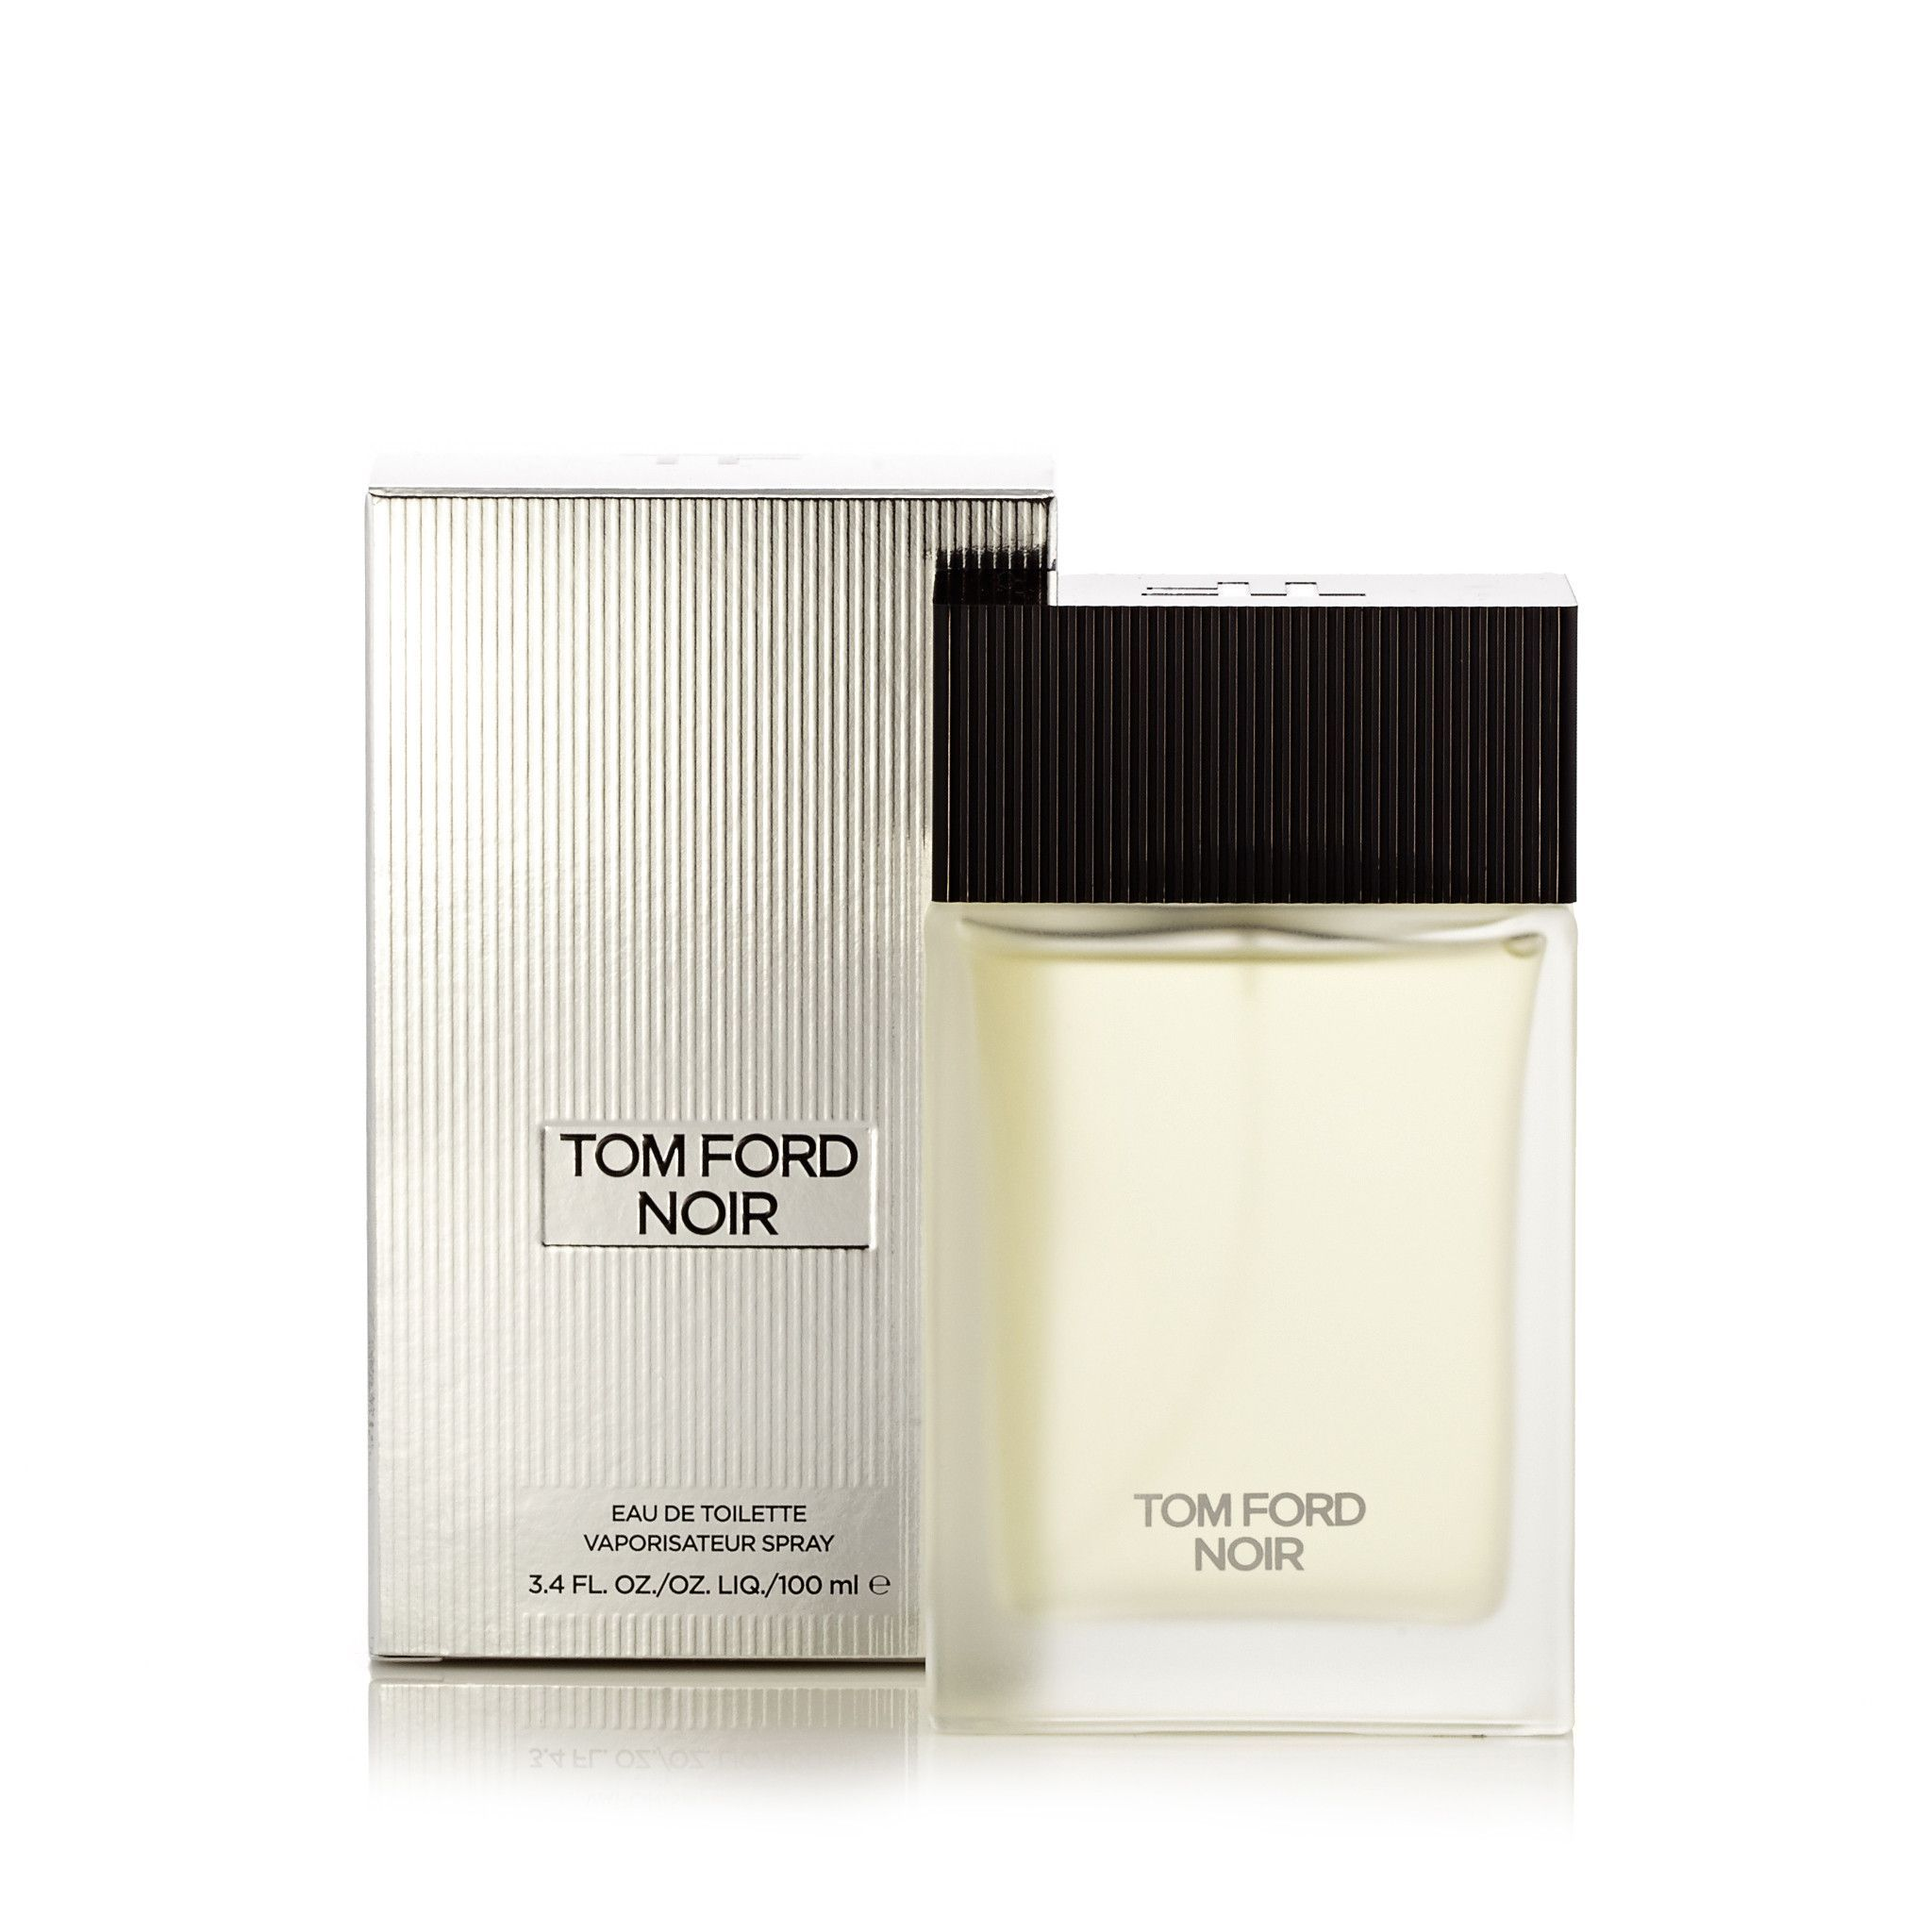 Tom Ford Noir Eau de Toilette Spray for Men by Tom Ford